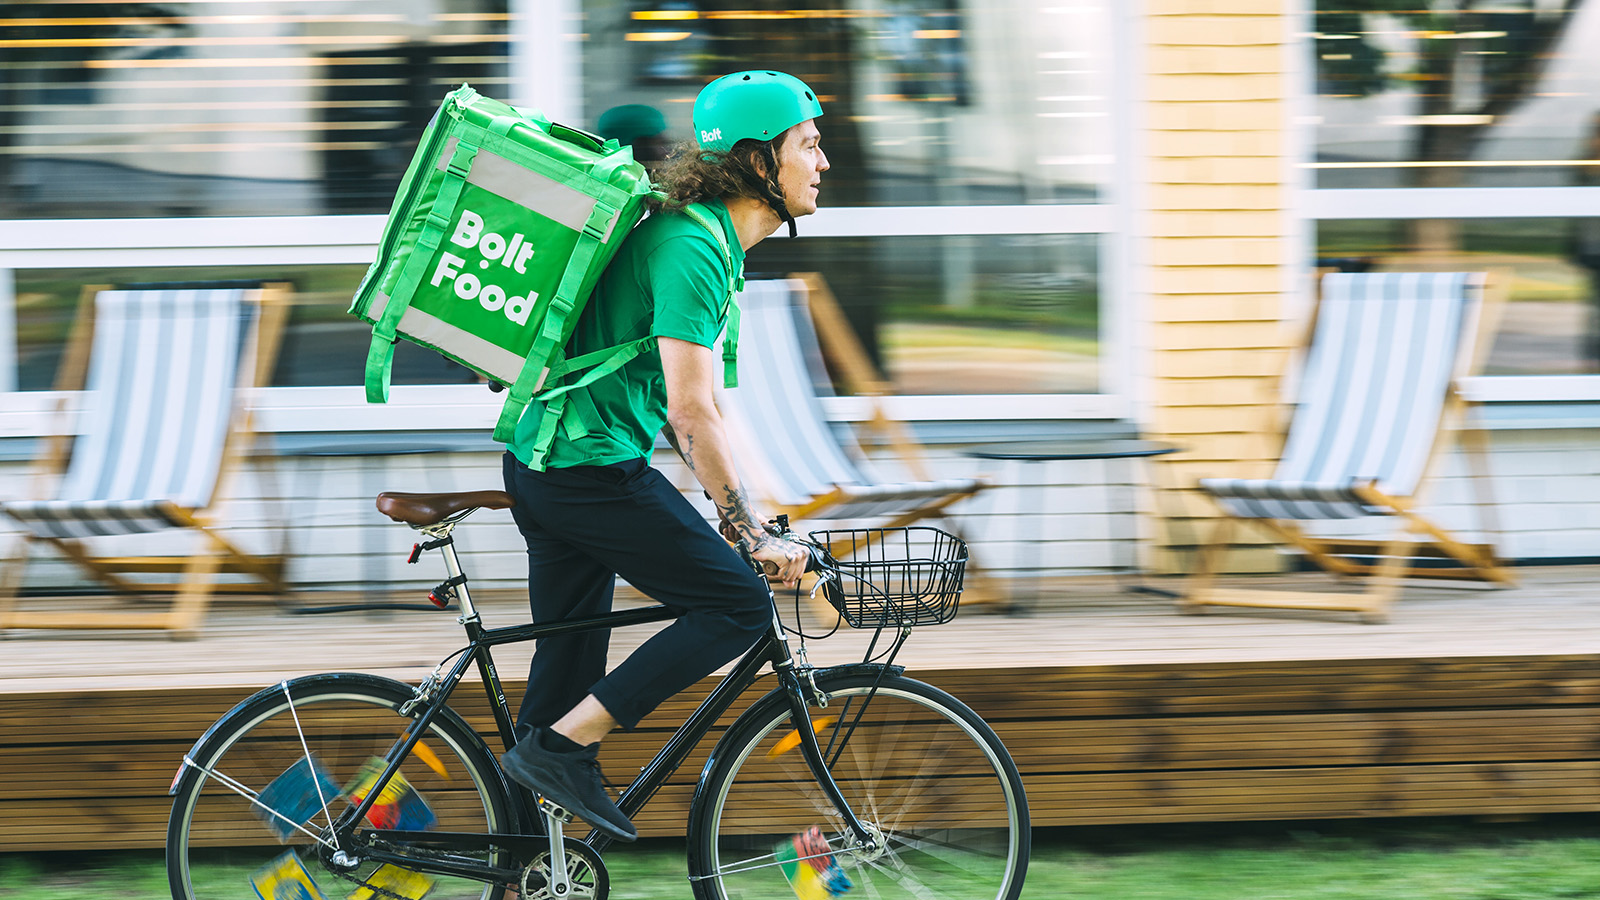 Bolt-Food-Delivery